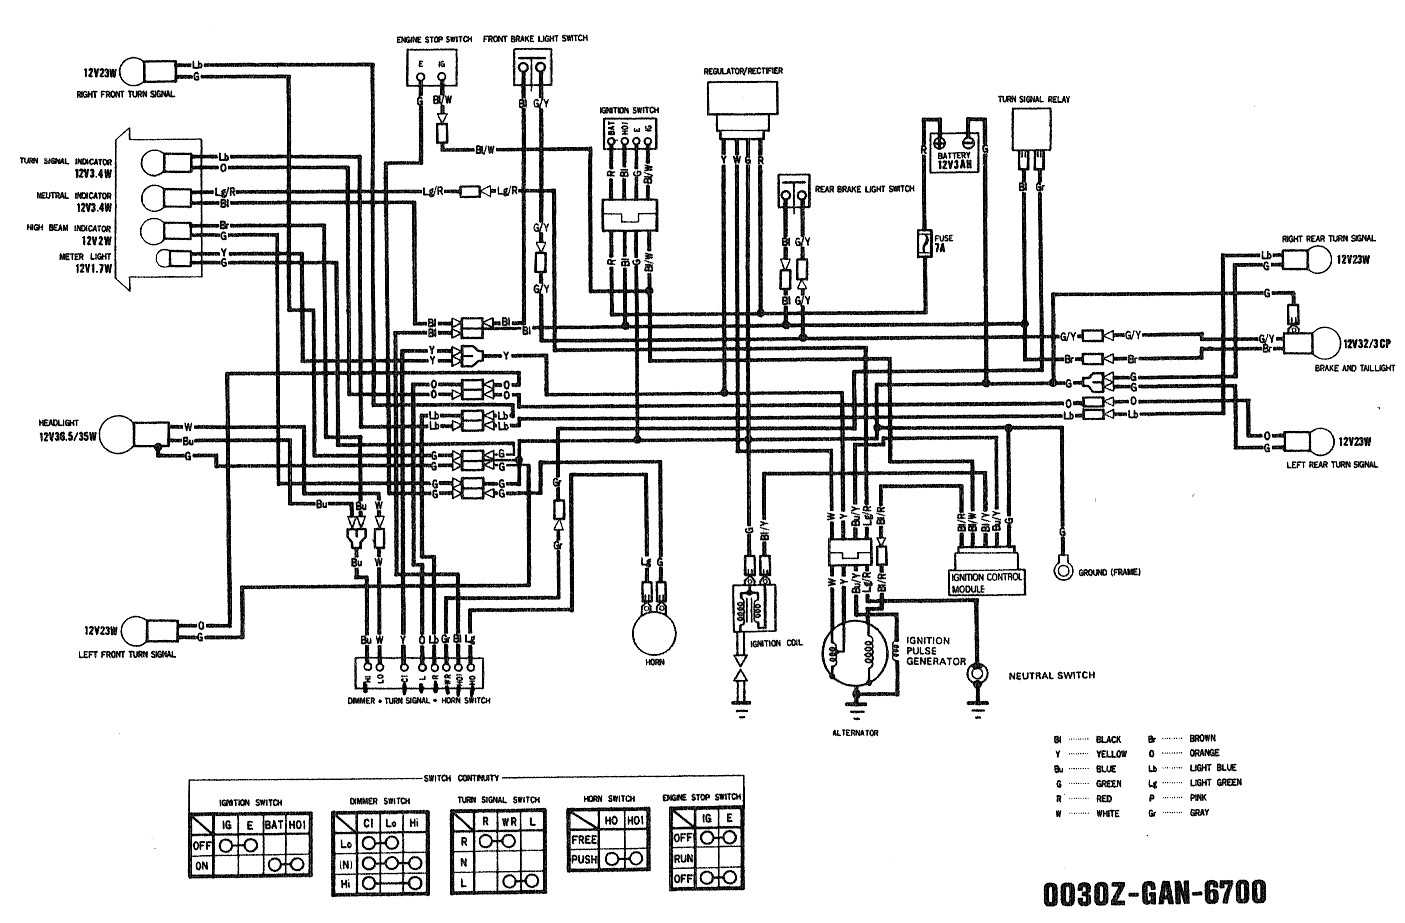 Jincheng Monkey Bike Wiring Diagram Homemade Water Filter Honda Z50 12v Diagram. Honda. Auto